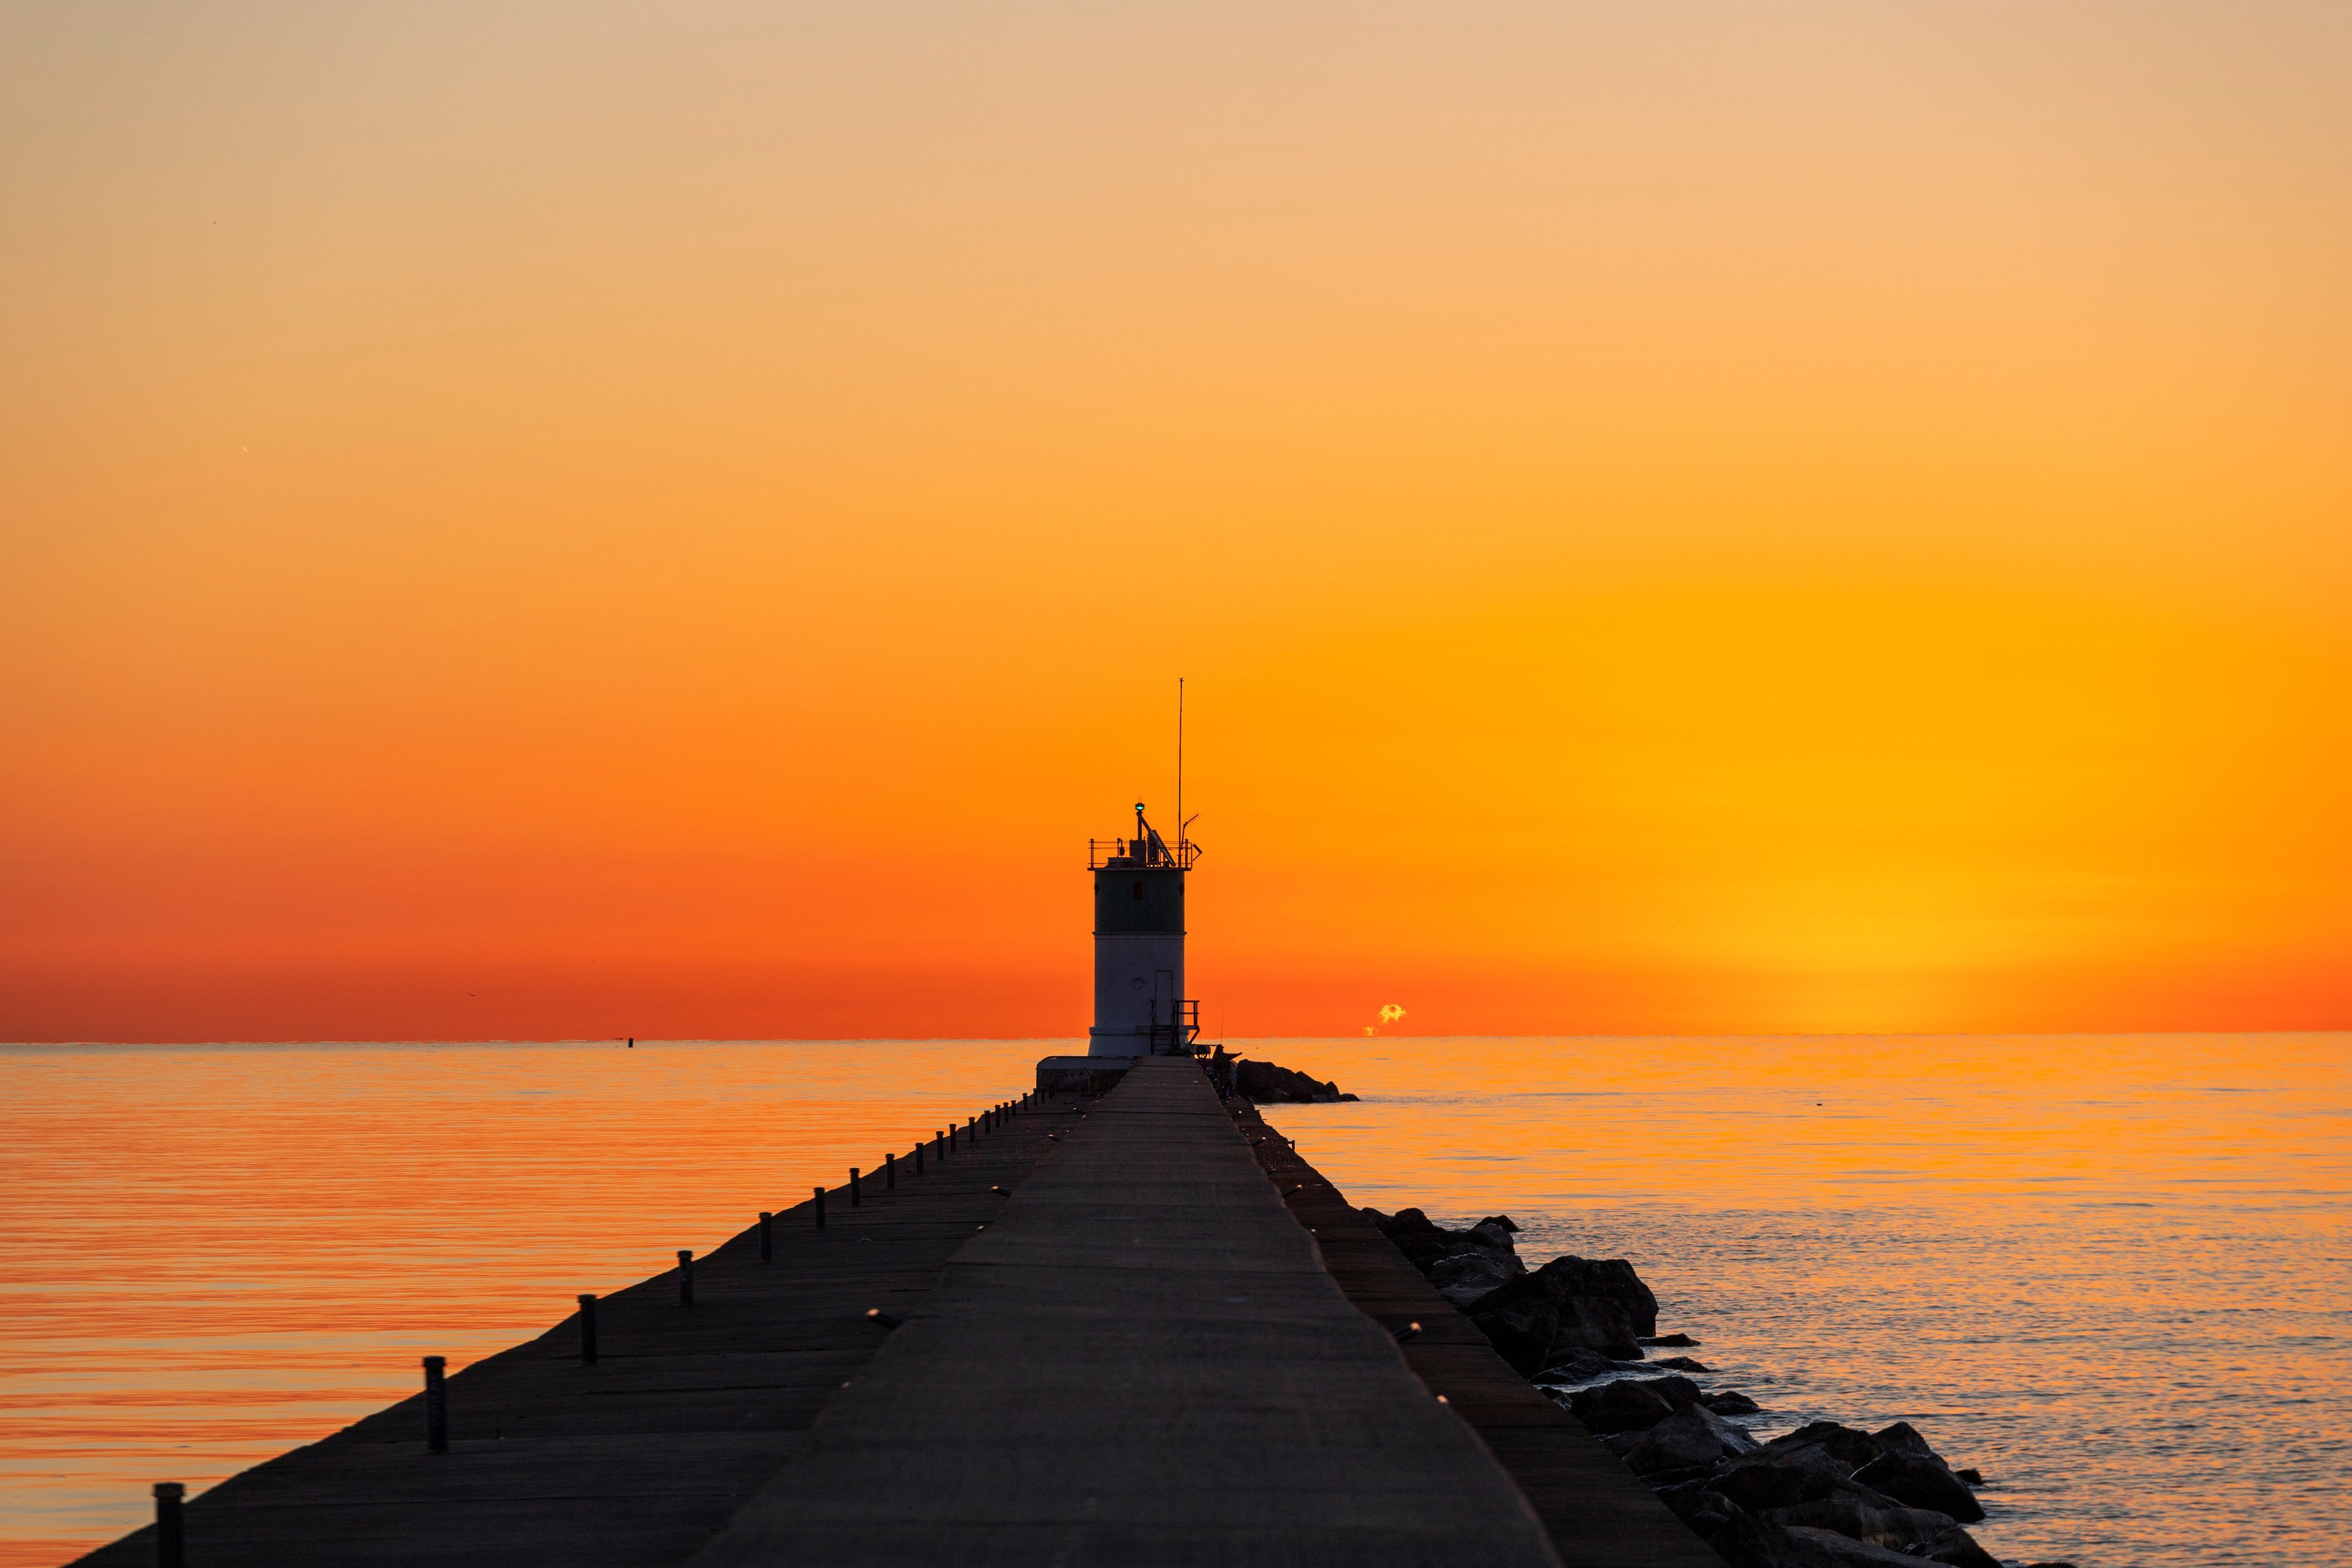 Sunrise over a lighthouse walkway on Lake Michigan in Waukegan, a fishing spot near Chicago